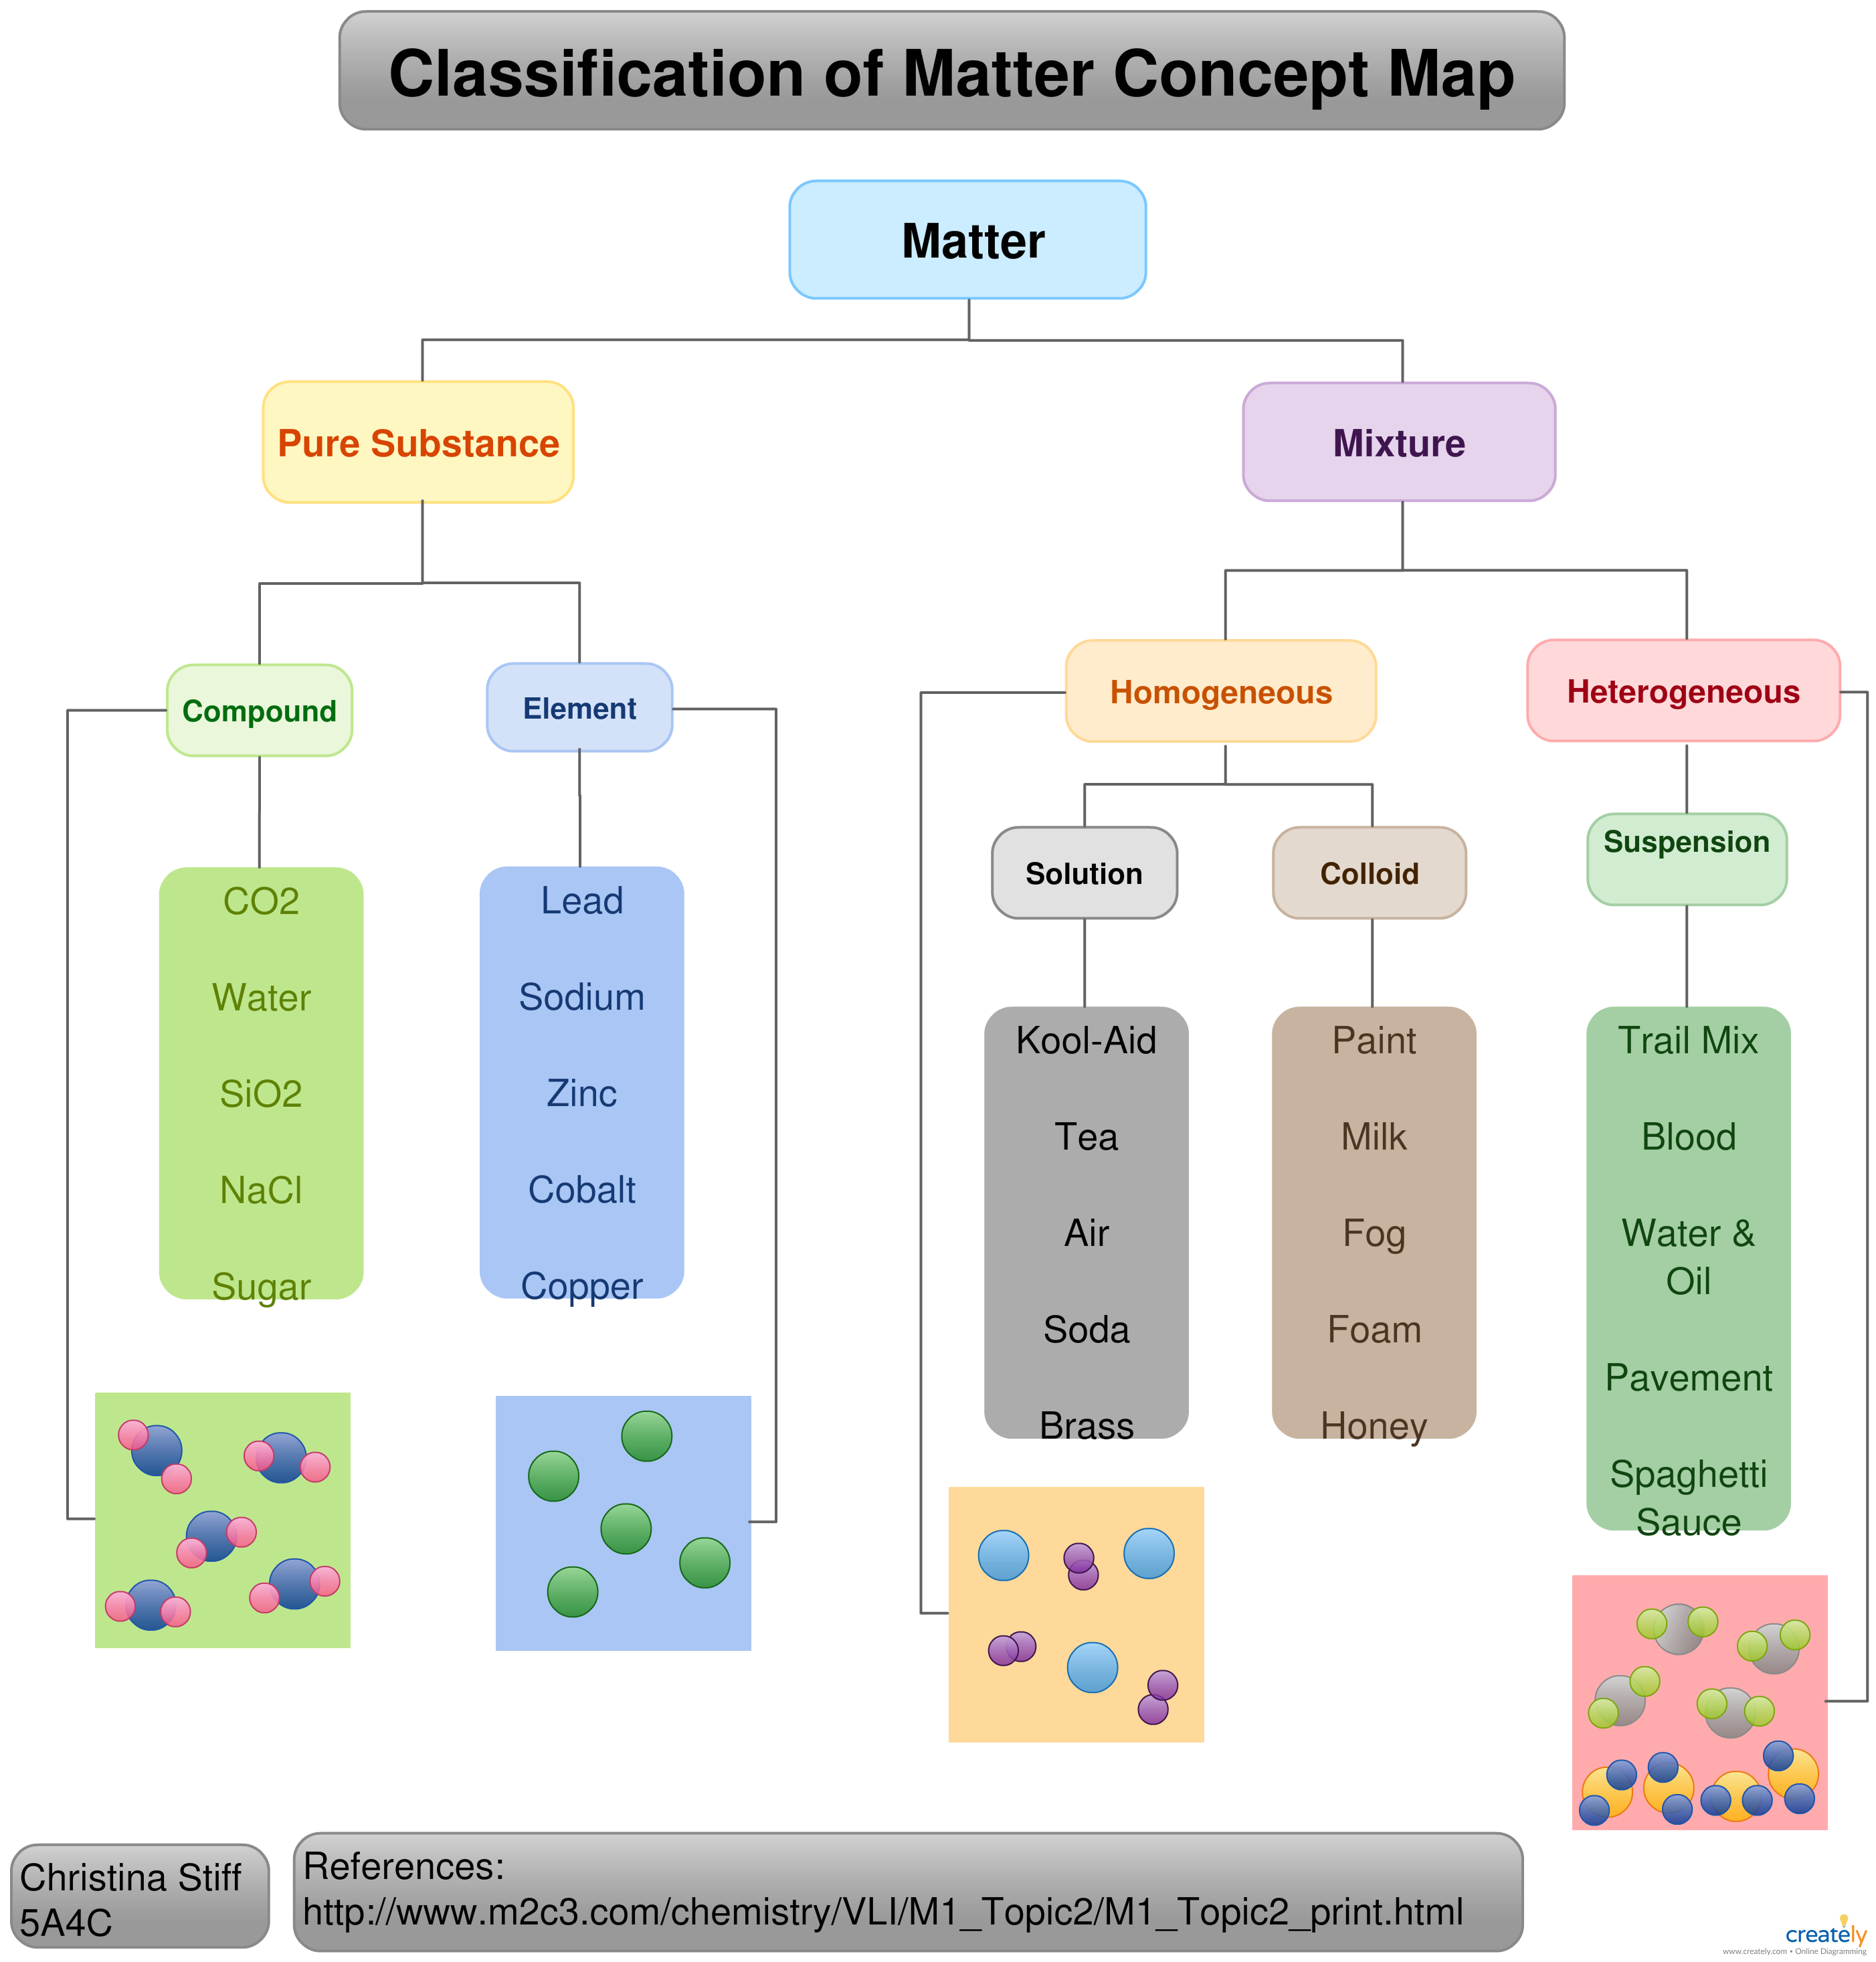 medium resolution of Classification of Matter Concept Map   Concept map